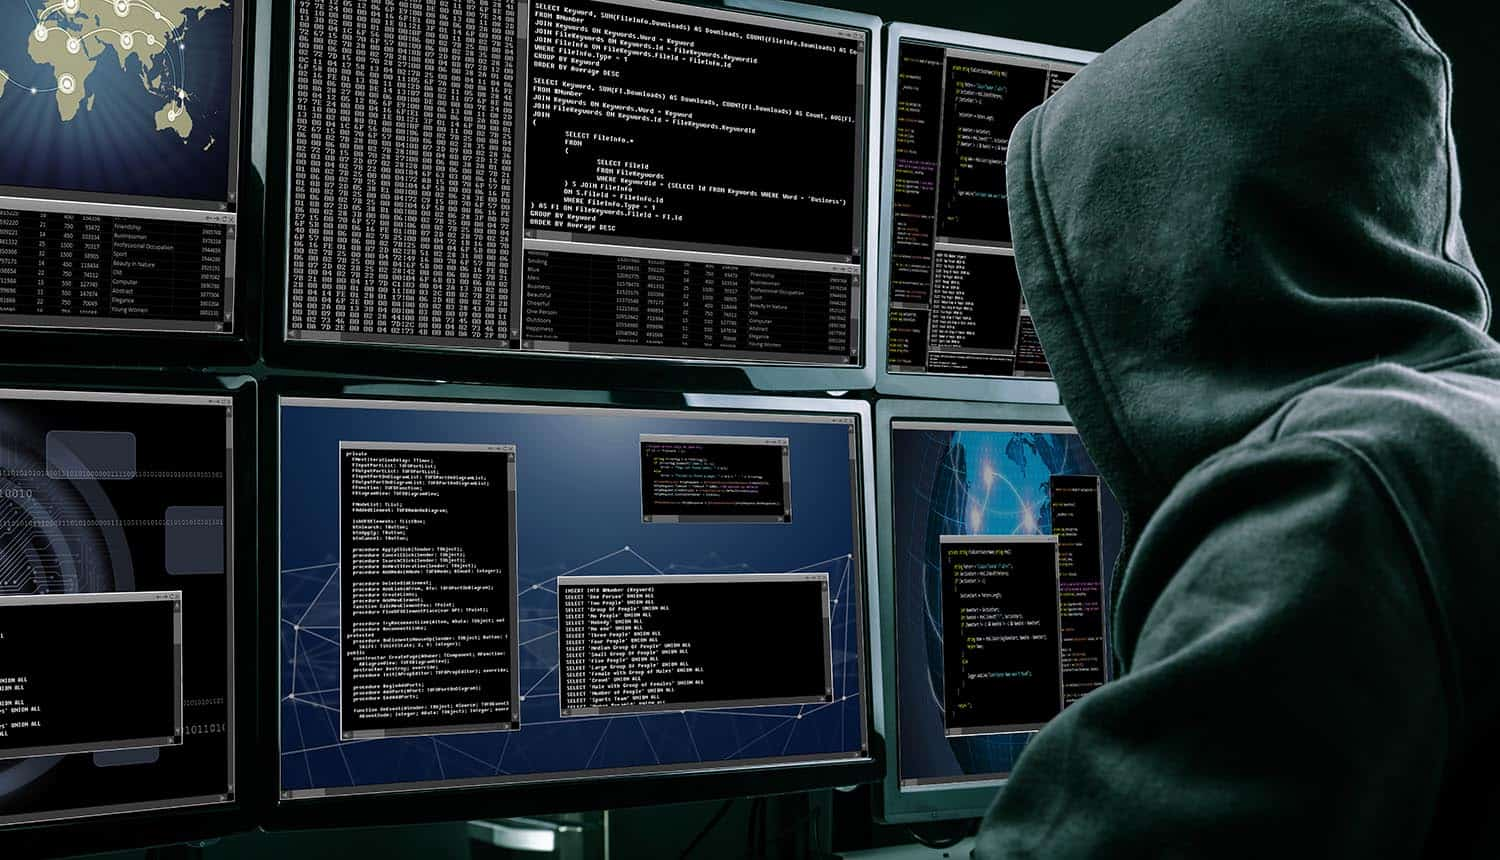 Rear view of a hacker using multiple computers showing the most common cybercrimes to be expected in 2020